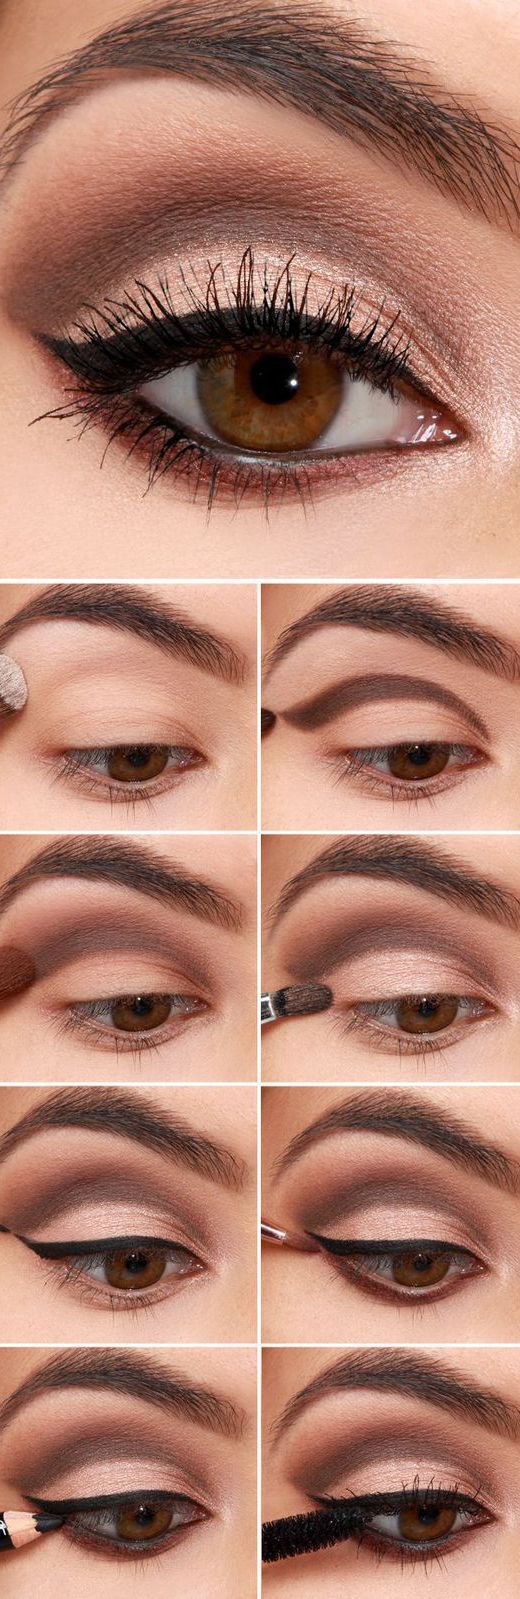 16 Easy Step-by-Step Eyeshadow Tutorials for Beginners: #3. Easy Eyeshadow Makeup Tutorials for Beginners – Brown Cut Crease with Eyeliner #cutcreasestepbystep #eyeshadowsforbeginners #cutcreaseeyeshadow